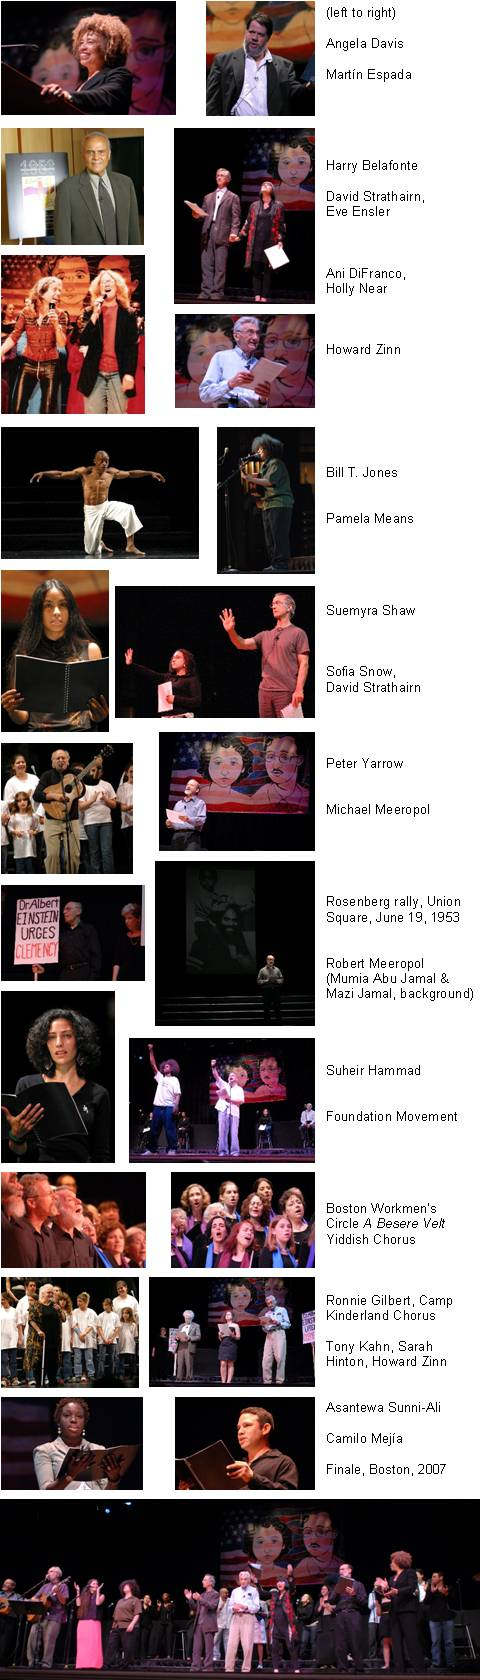 Image Collage from Celebrate performances